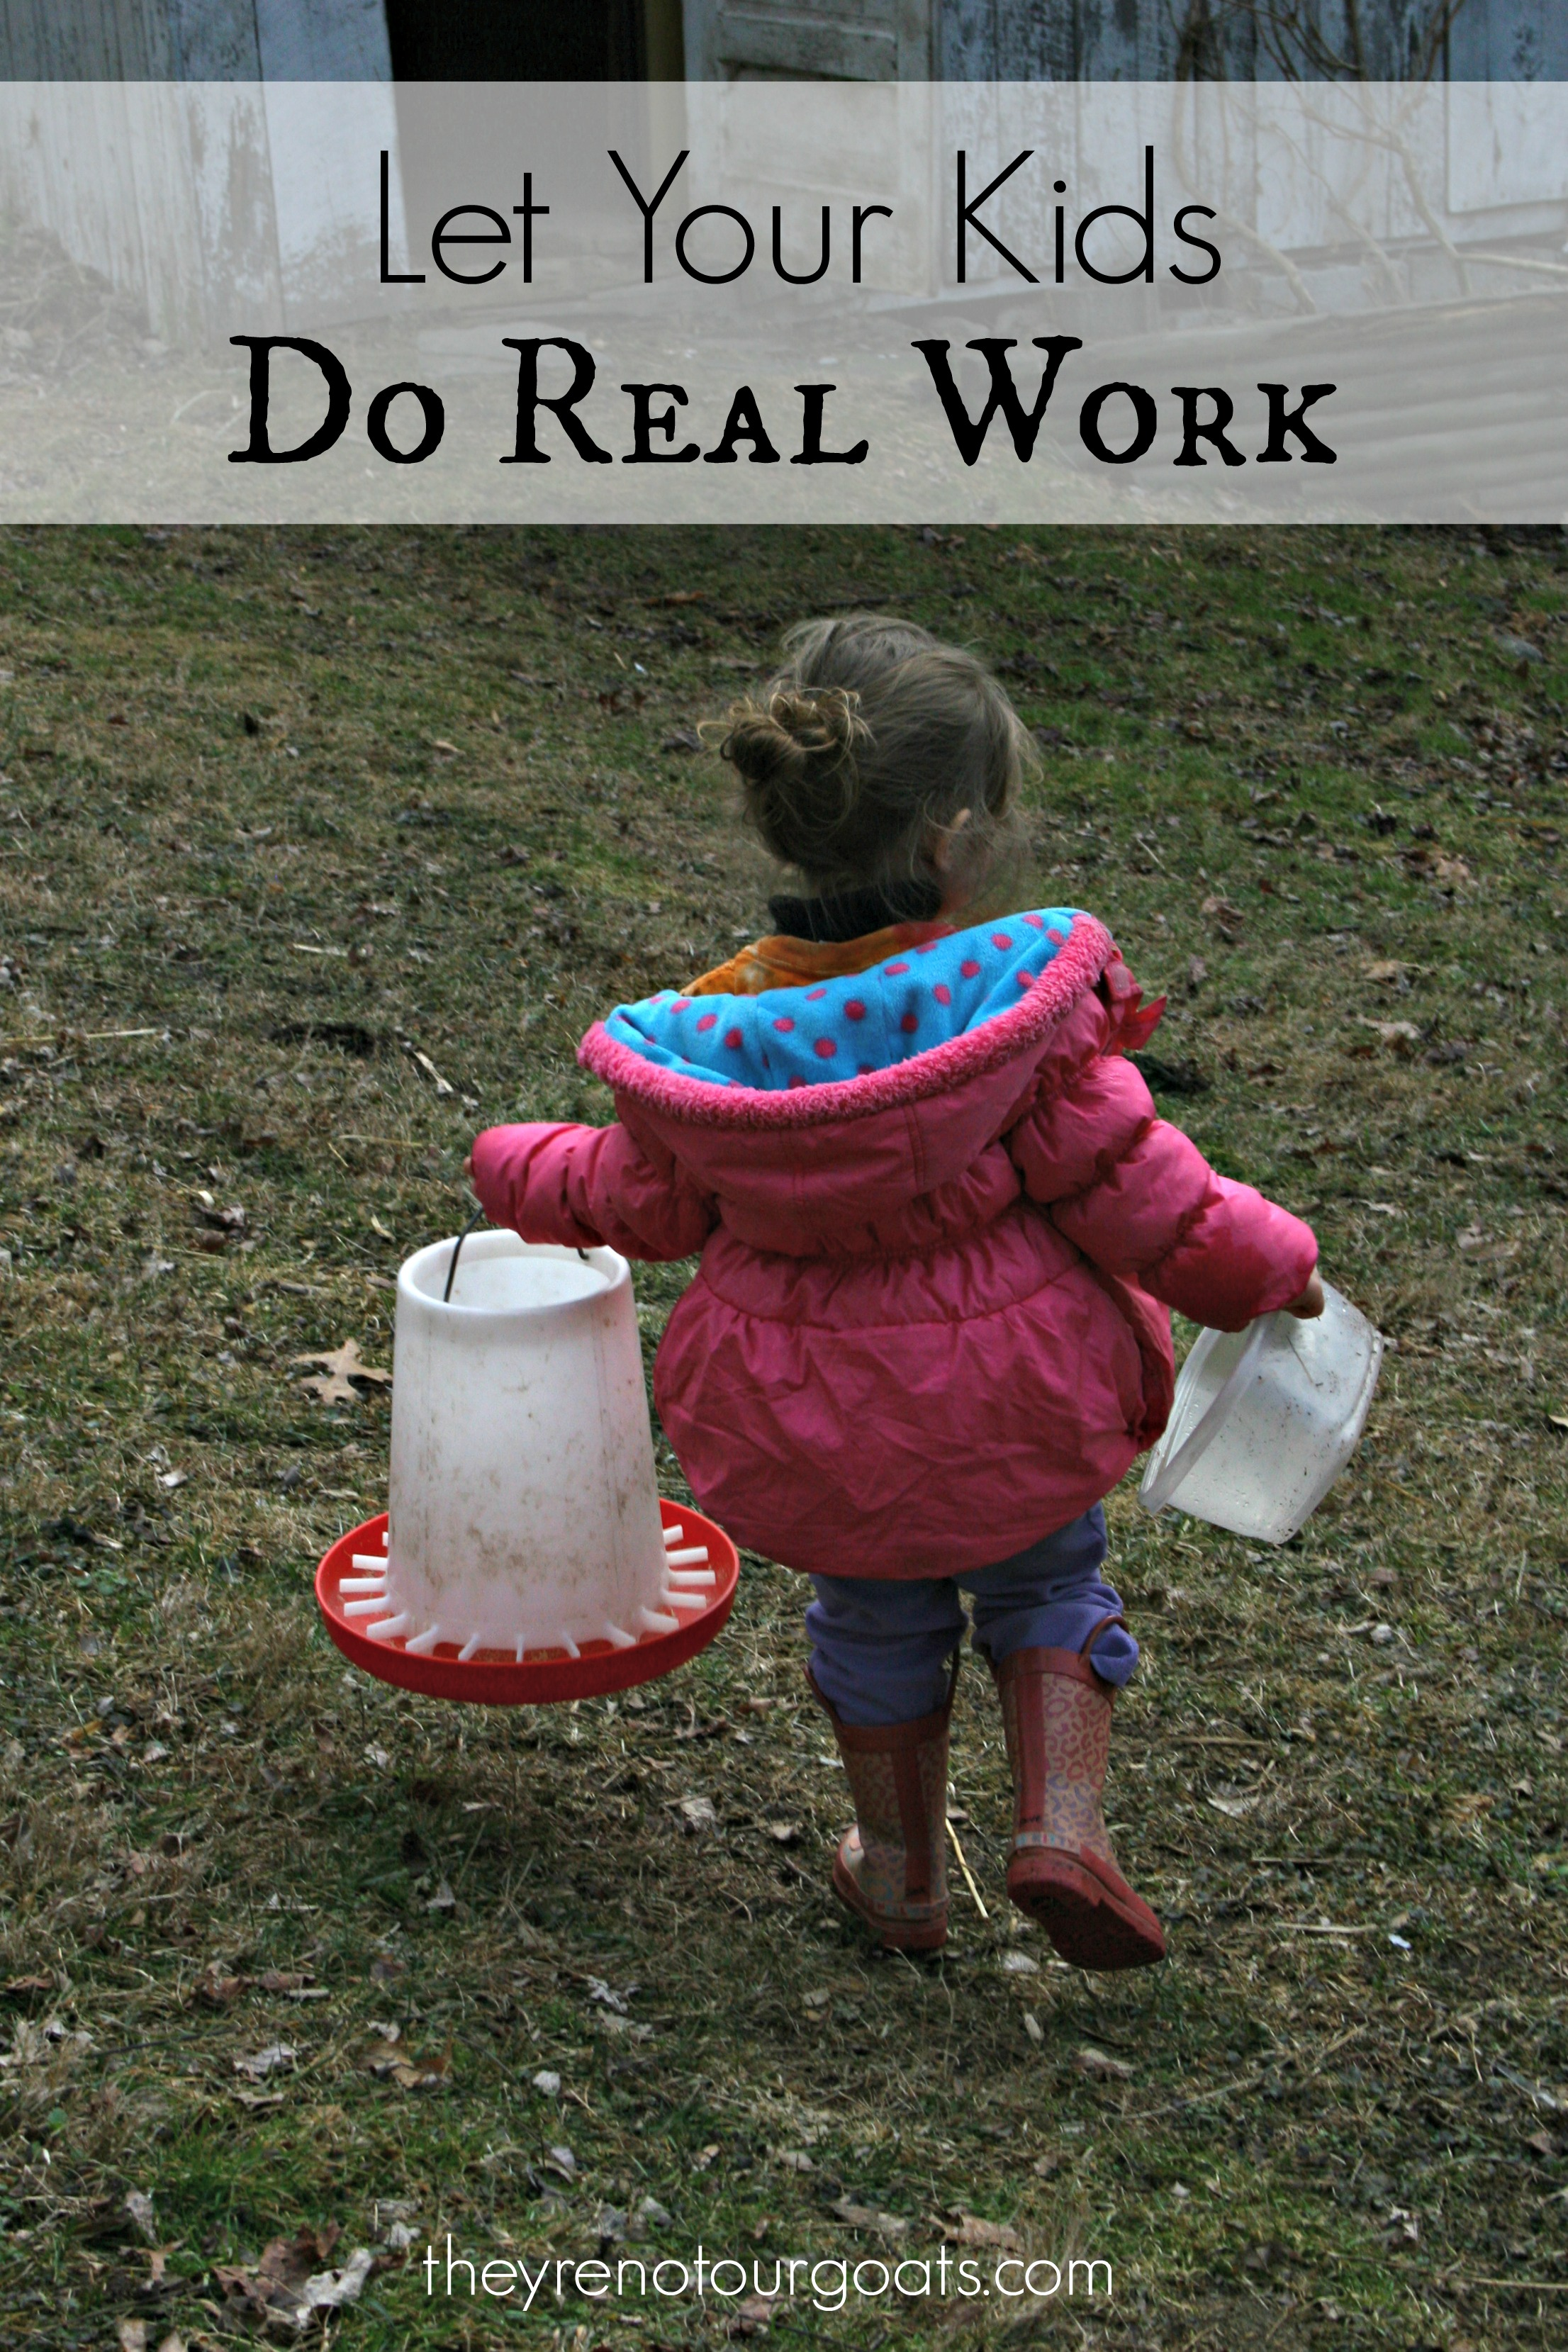 Let your kids do real work theyre not our goats let your kids do real work solutioingenieria Image collections